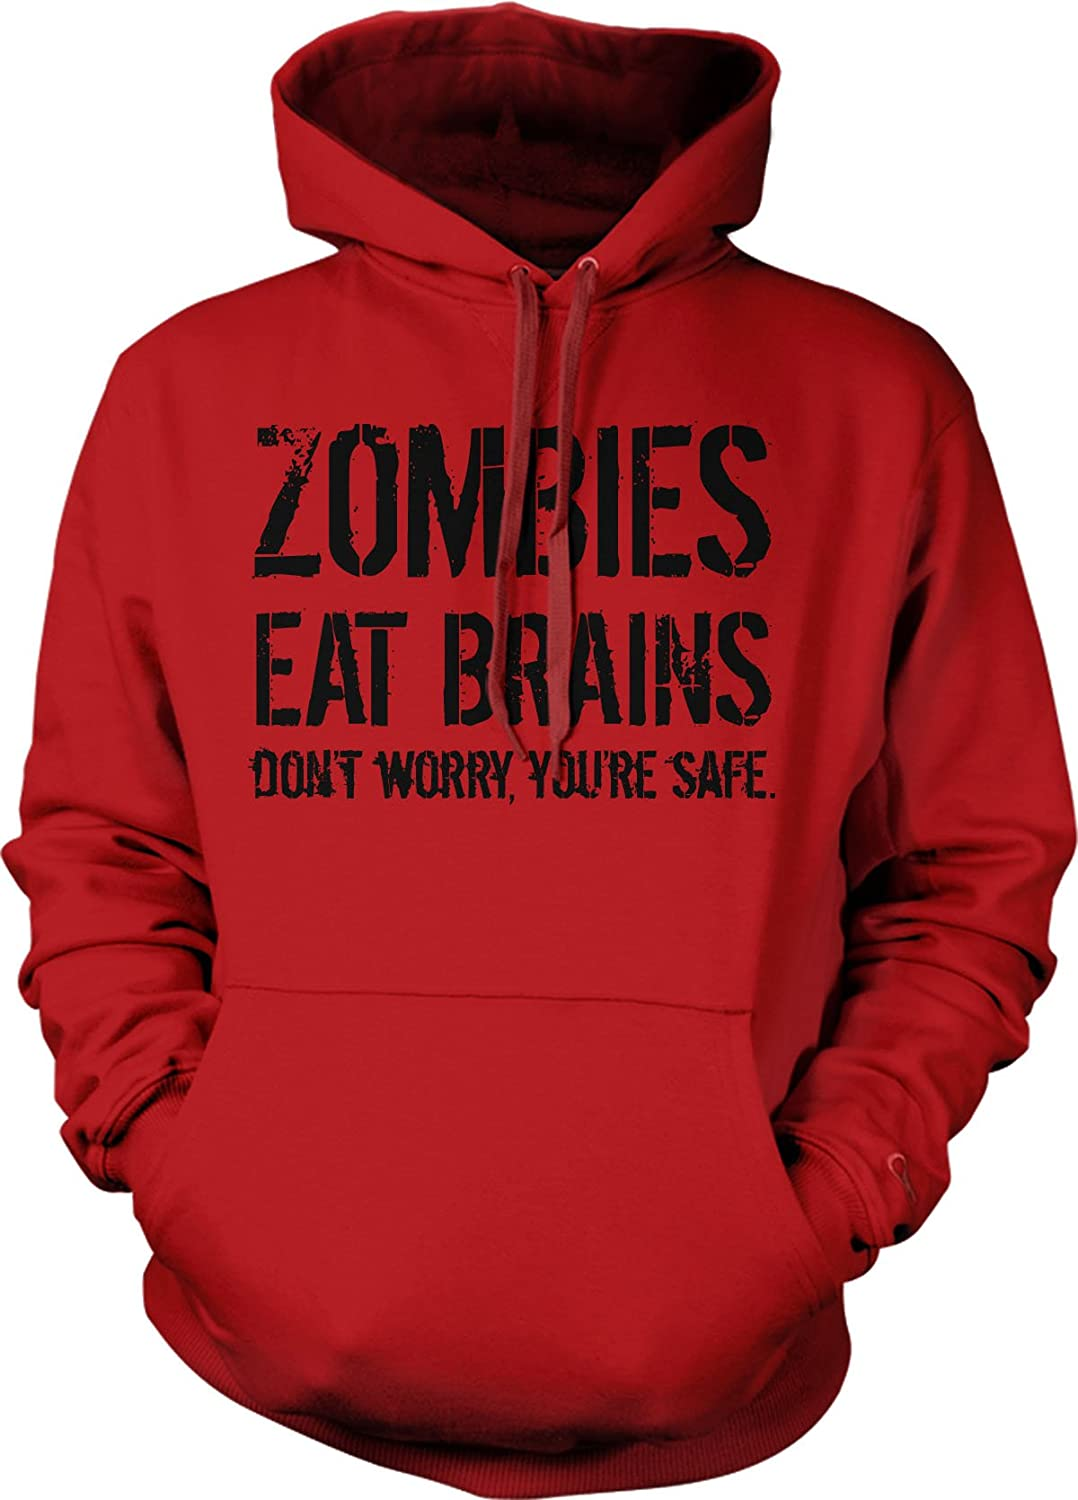 Zombies don't eat brains hoodies for guys